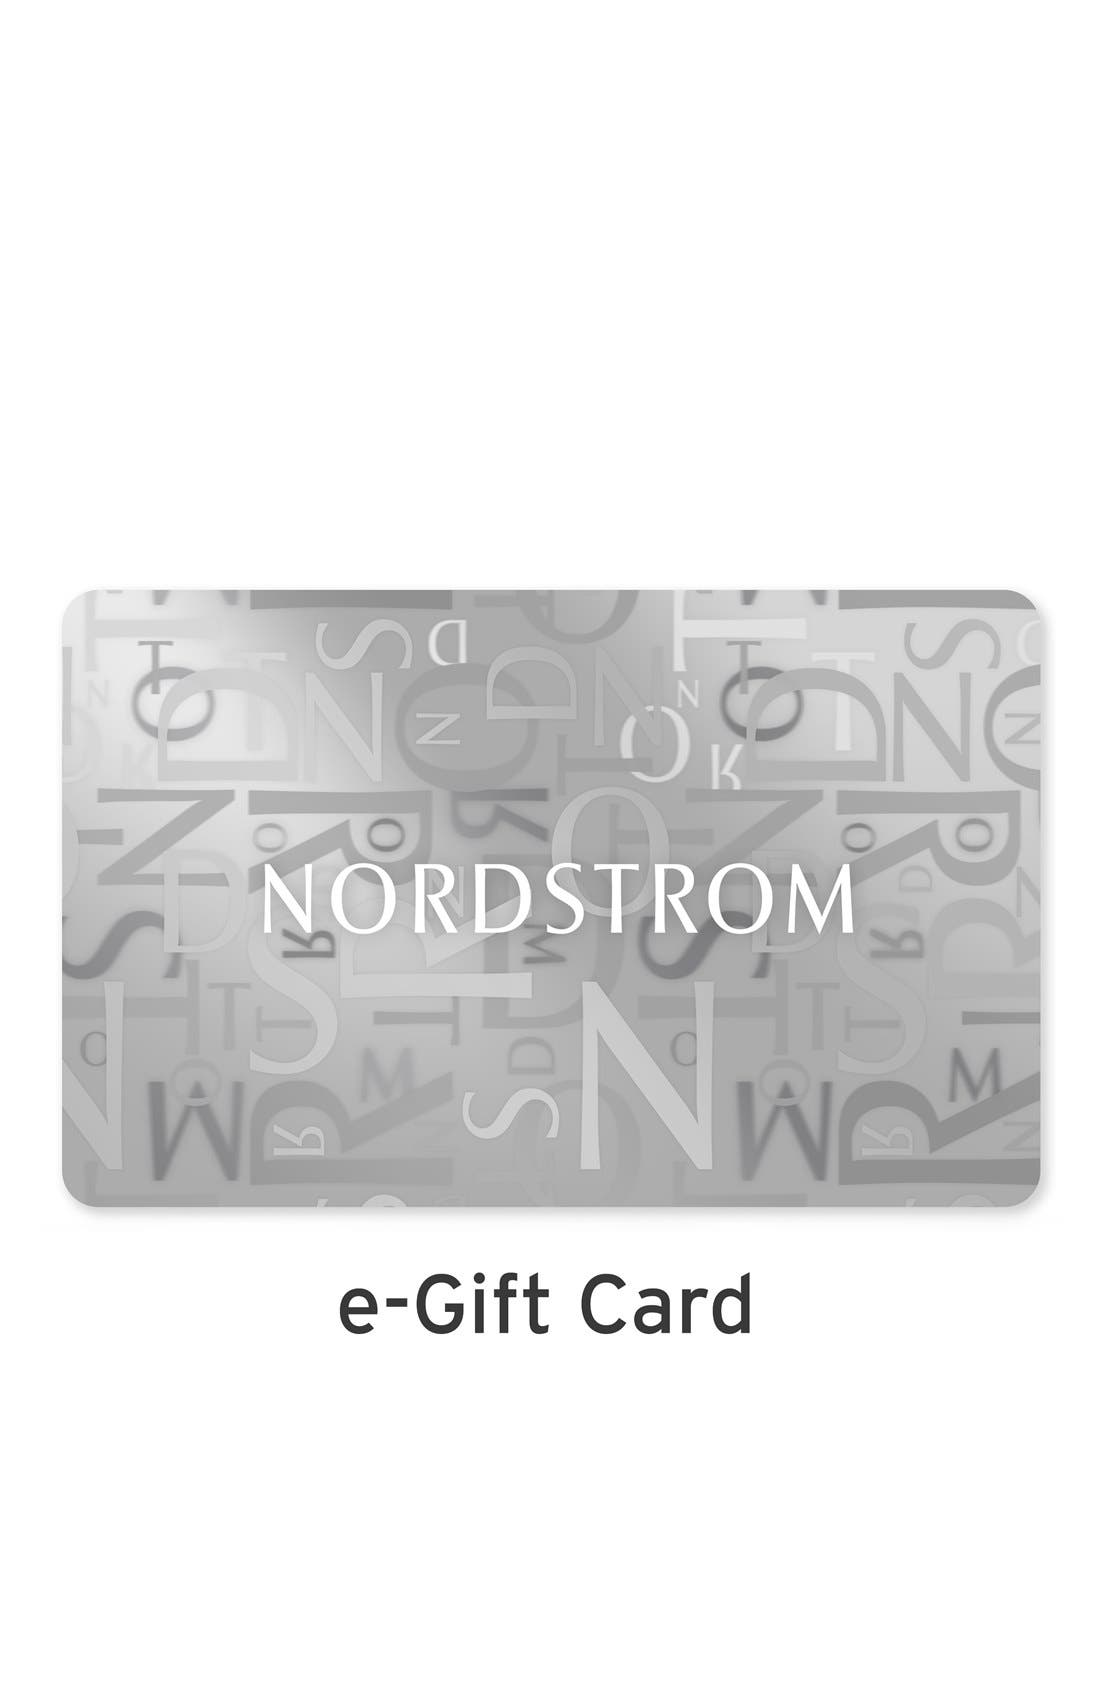 NORDSTROM GIFT CARD,                             e-Gift Card Classic,                             Main thumbnail 1, color,                             CGC